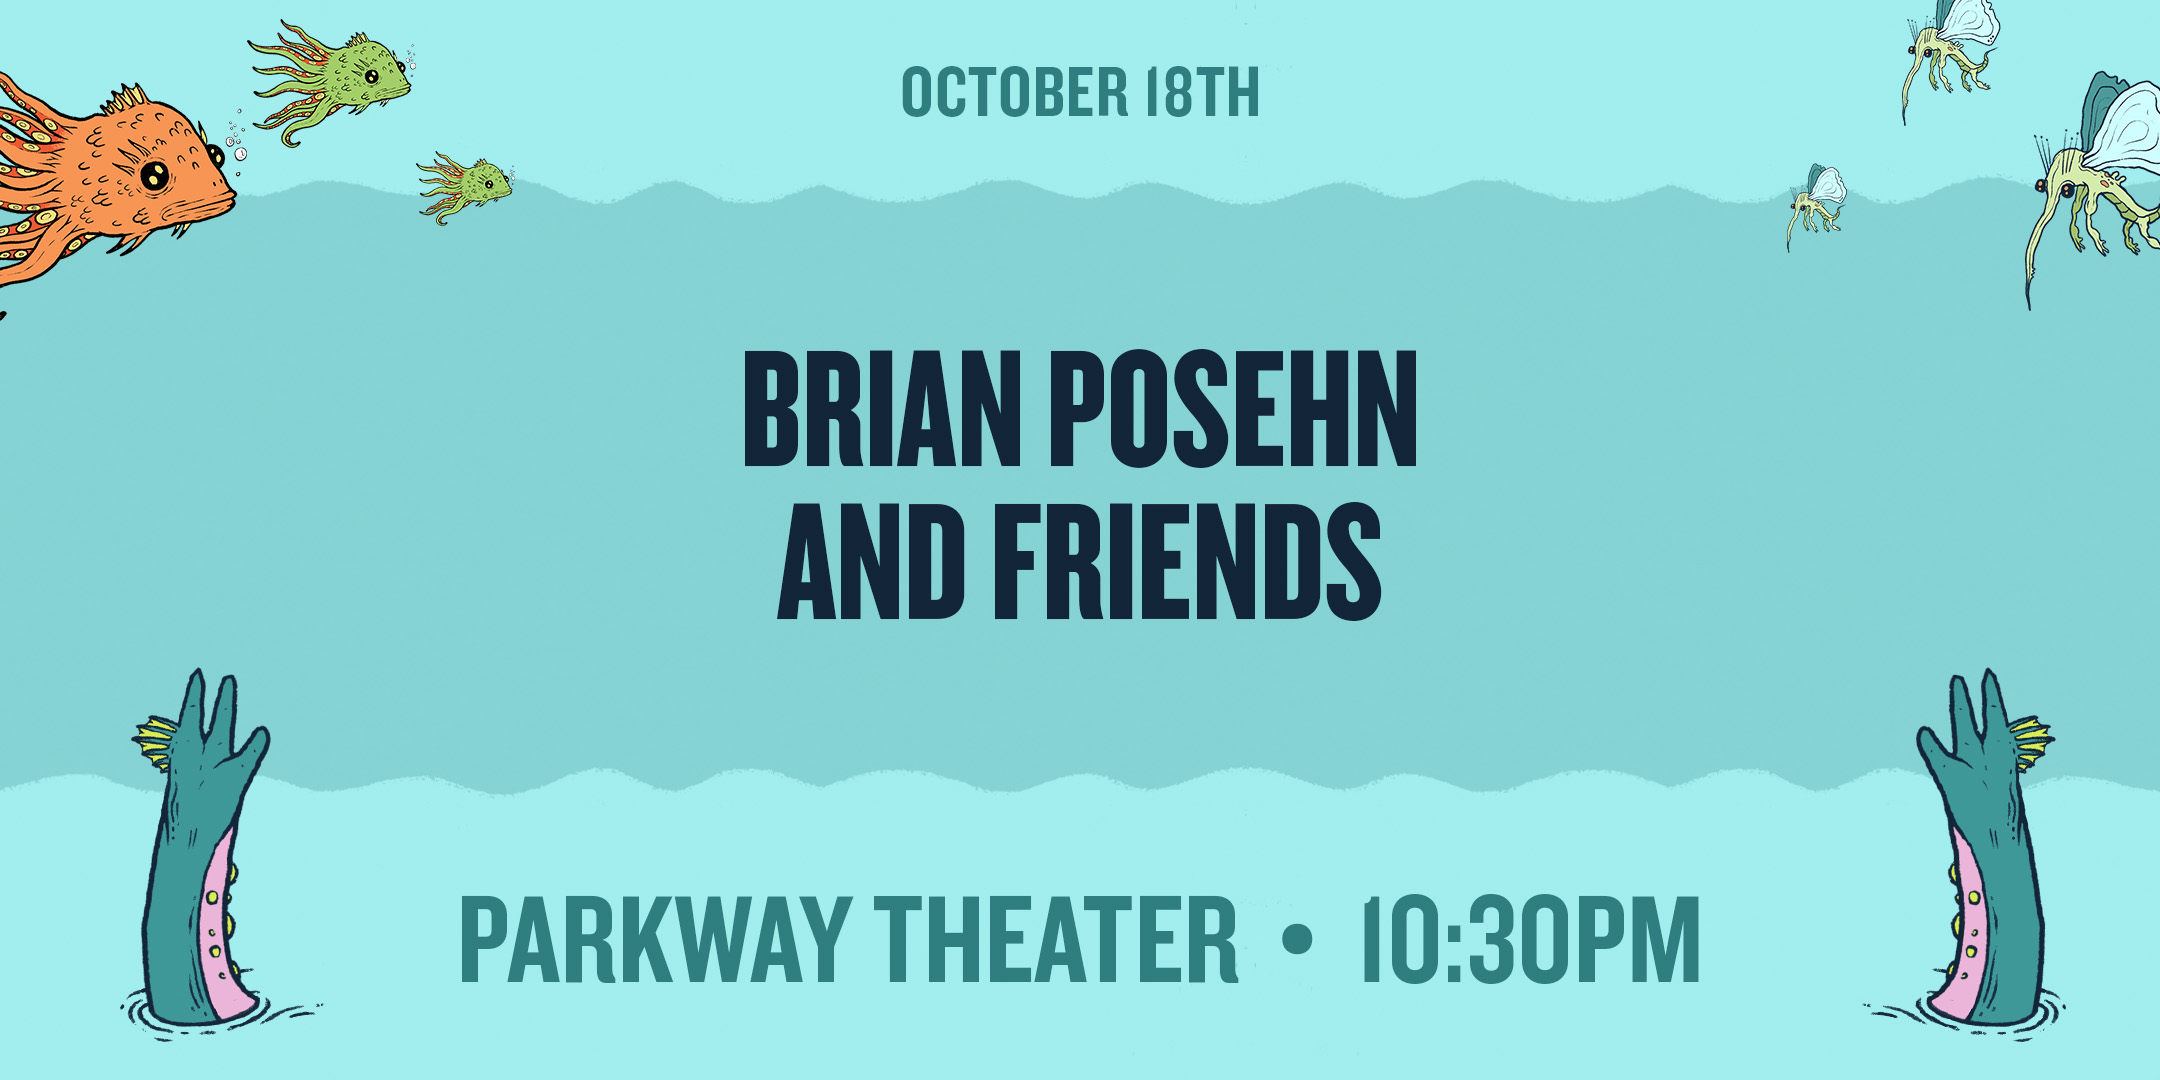 OCT18-Brian Posehn and Friends.jpg